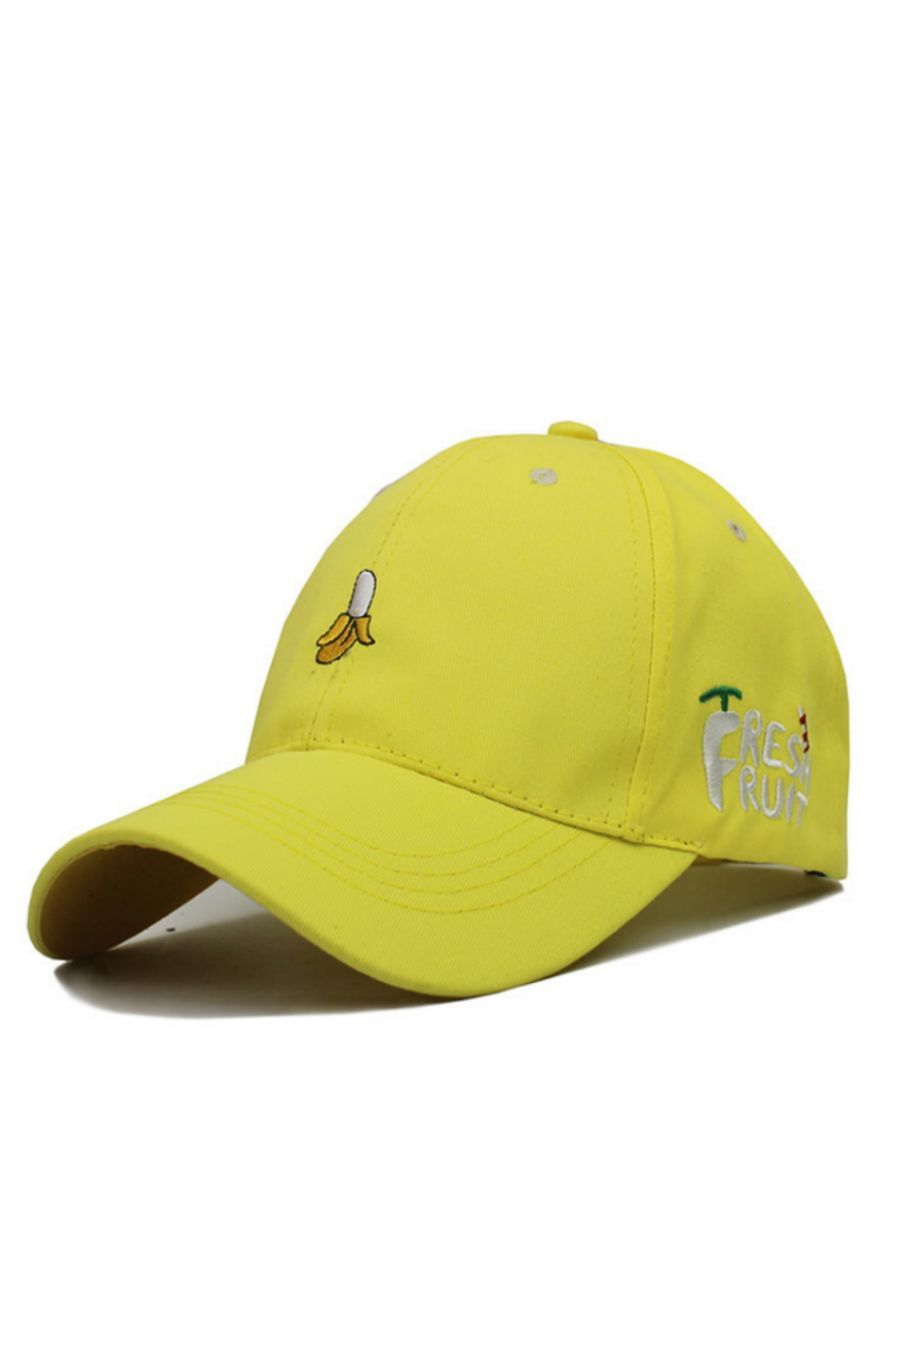 151975a2bc5 Yellow Banana Embroidered Hat in 2019